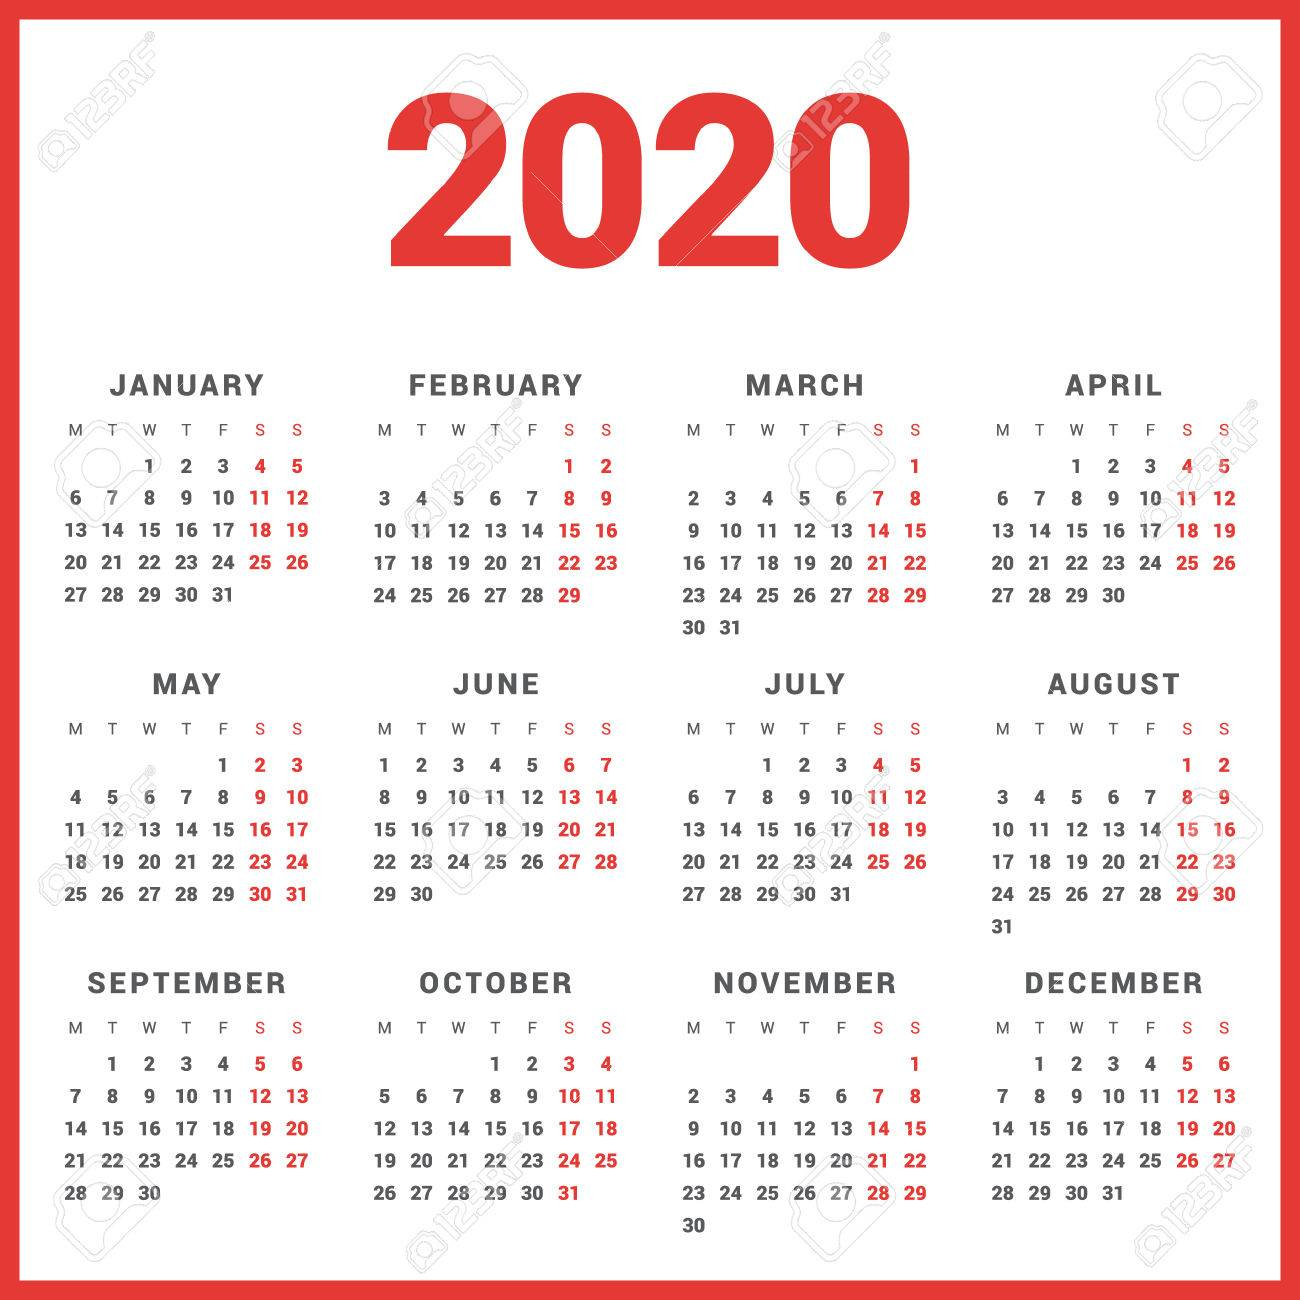 Calendar For 2020 Year On White Background. Week Starts Monday with 2020 Calendar Starting With Monday